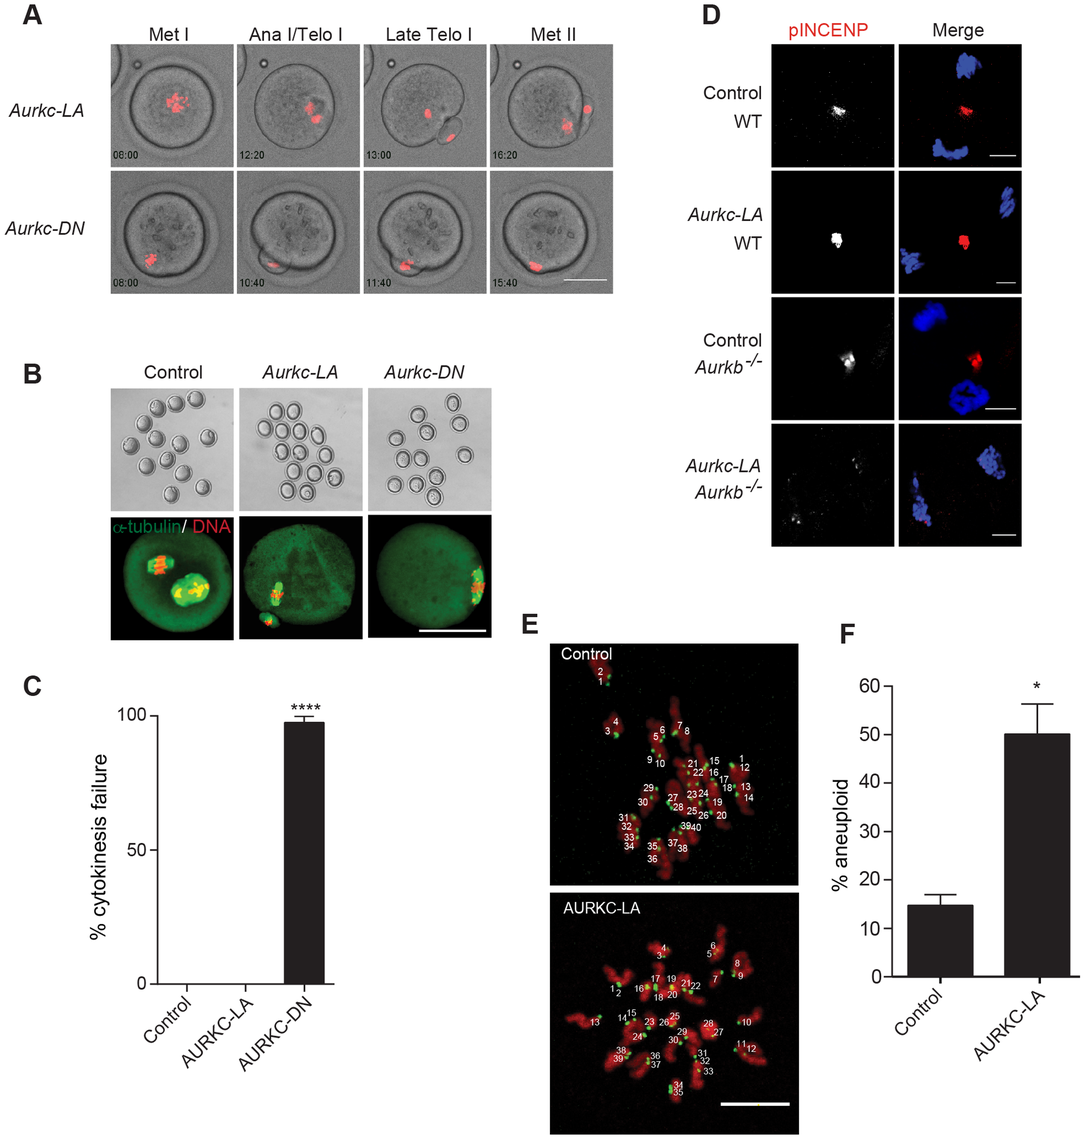 AURKC alone does not regulate cytokinesis and loss of its function leads to aneuploid eggs.